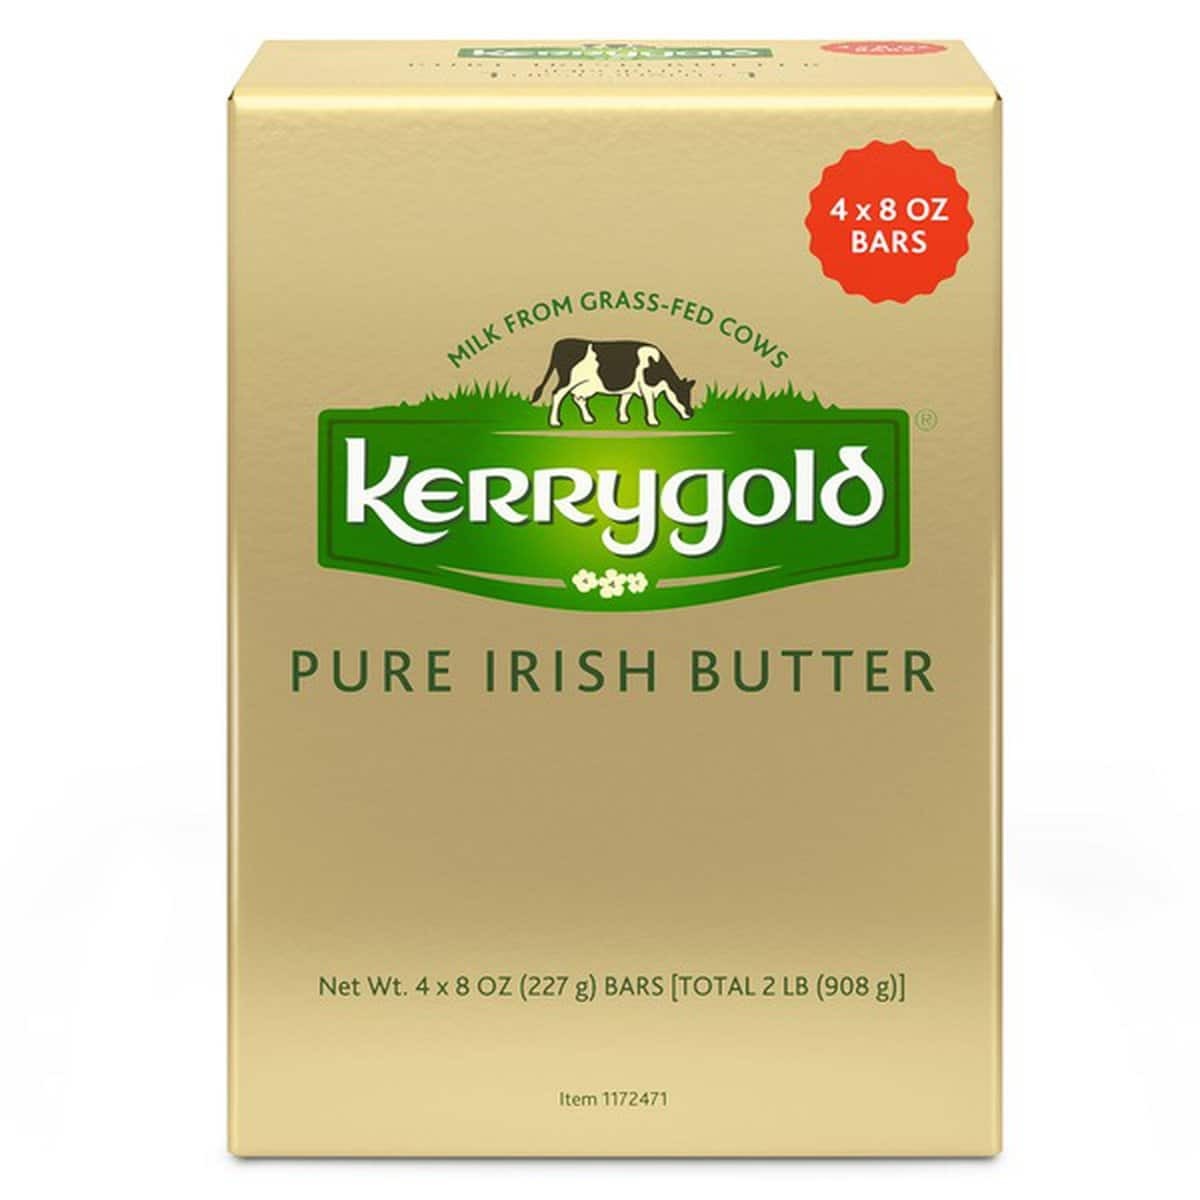 Costco Members : Kerrygold Pure Irish Butter Salted / Unsalted, 4 x 8 oz - $8.99 In-Store Nov 20 - Nov 30